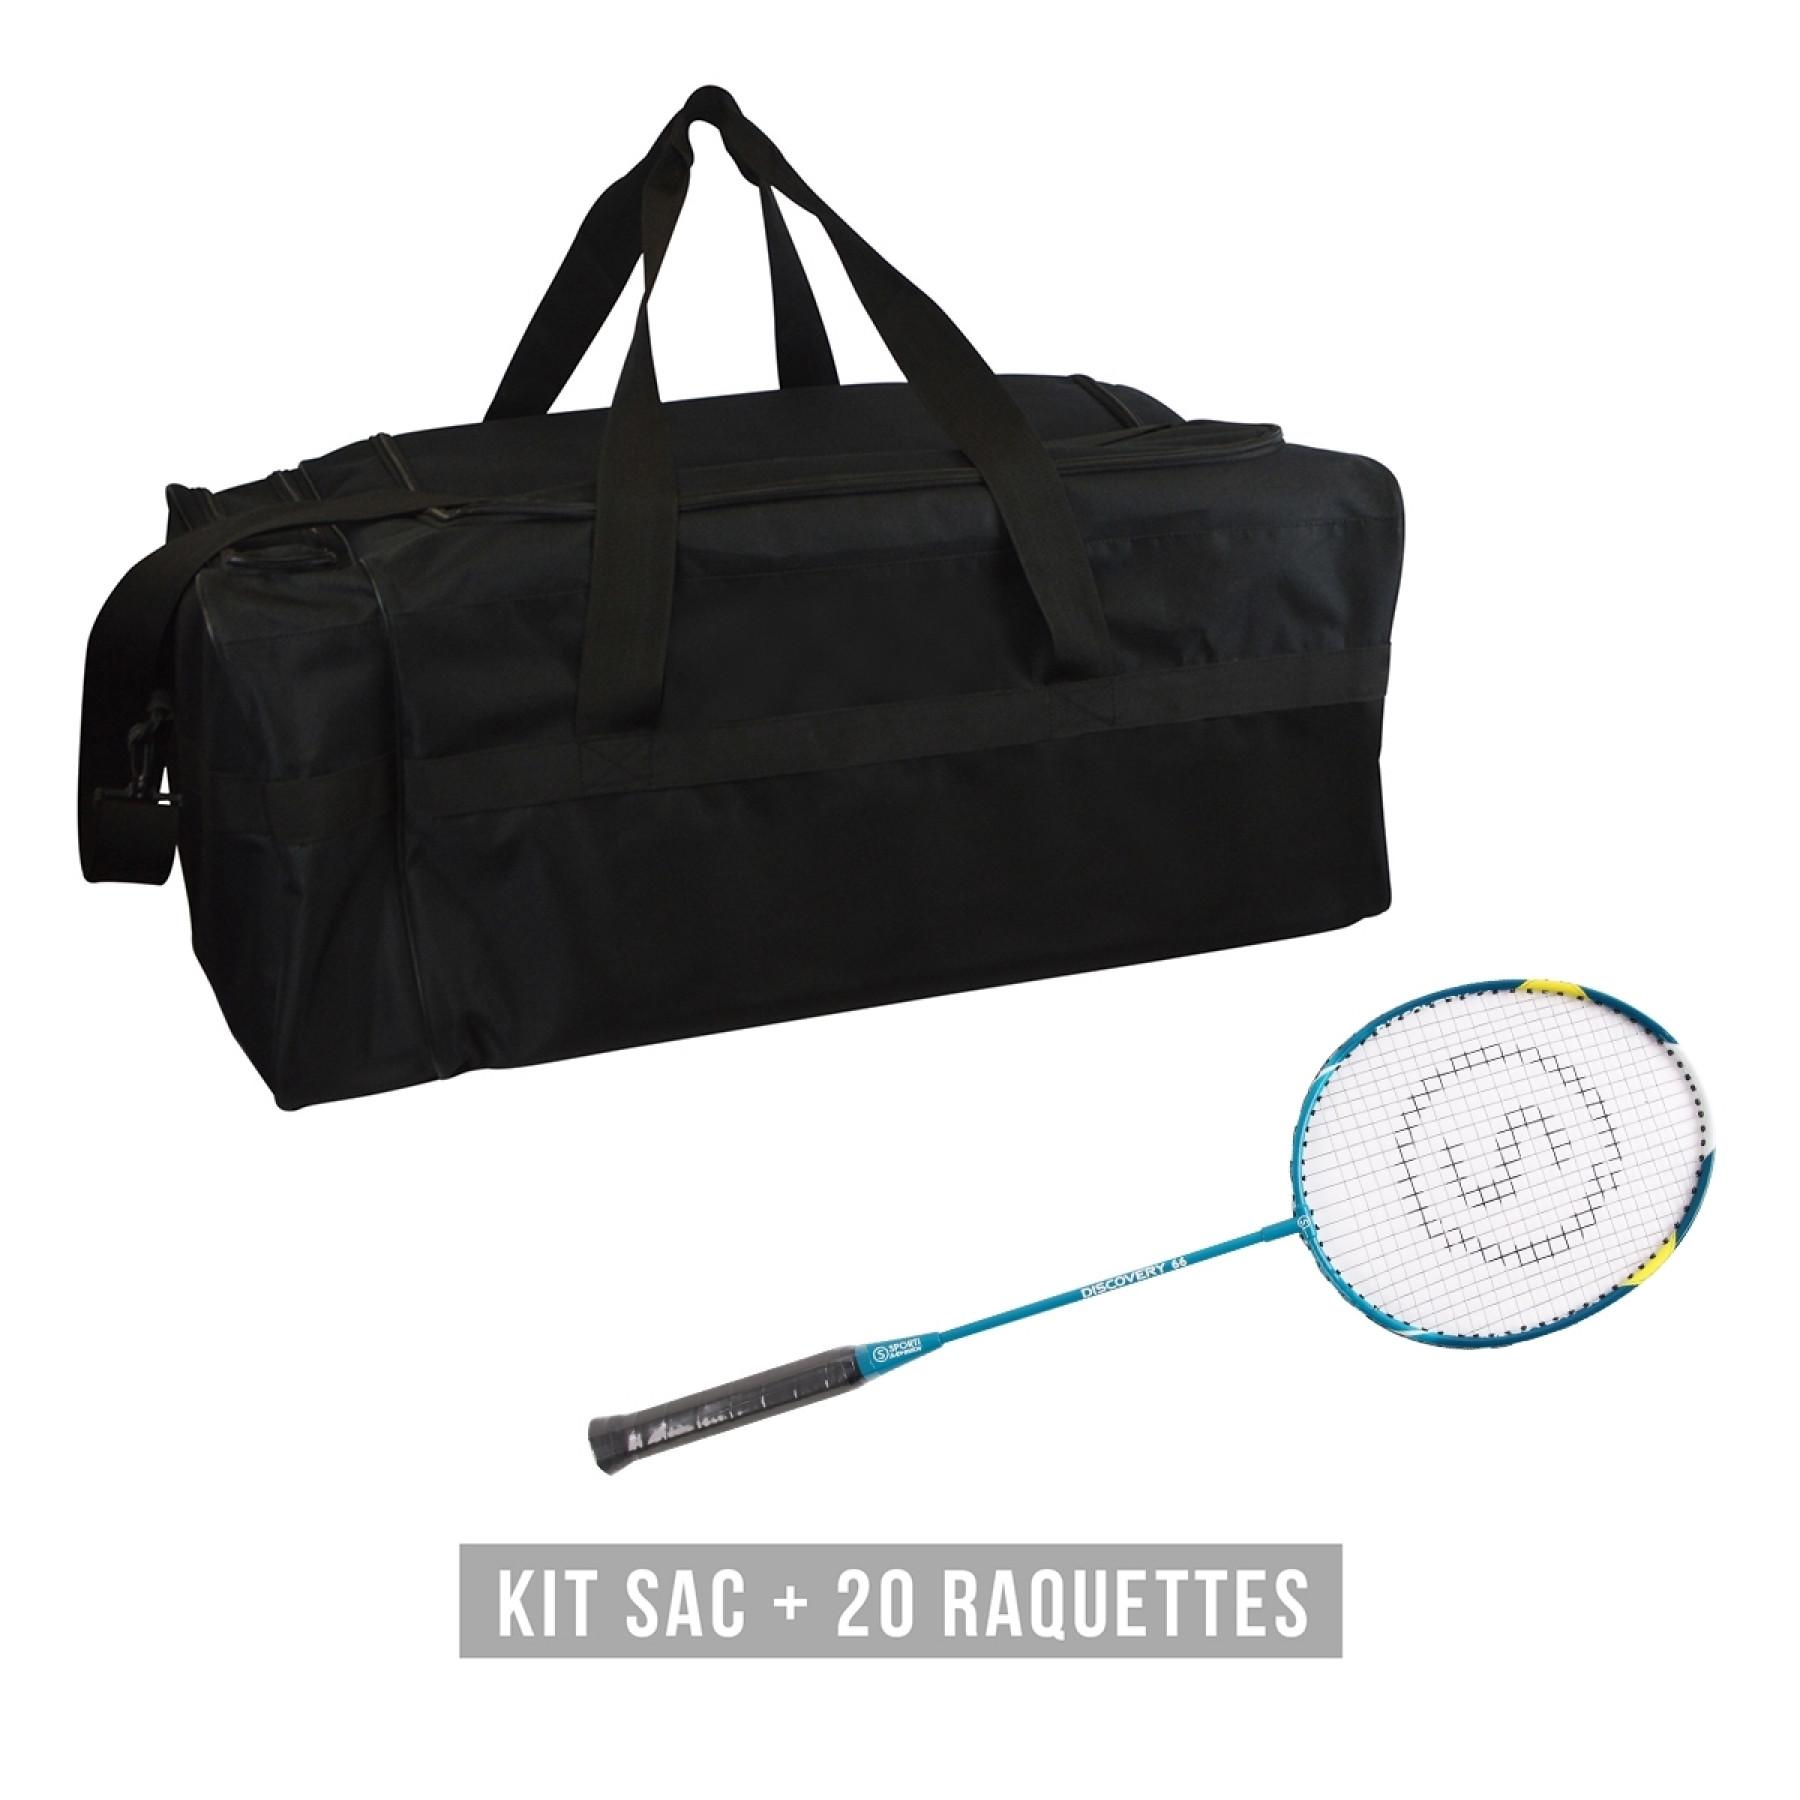 Racquet kit (bag + 20 racquets) Sporti France Discovery 66